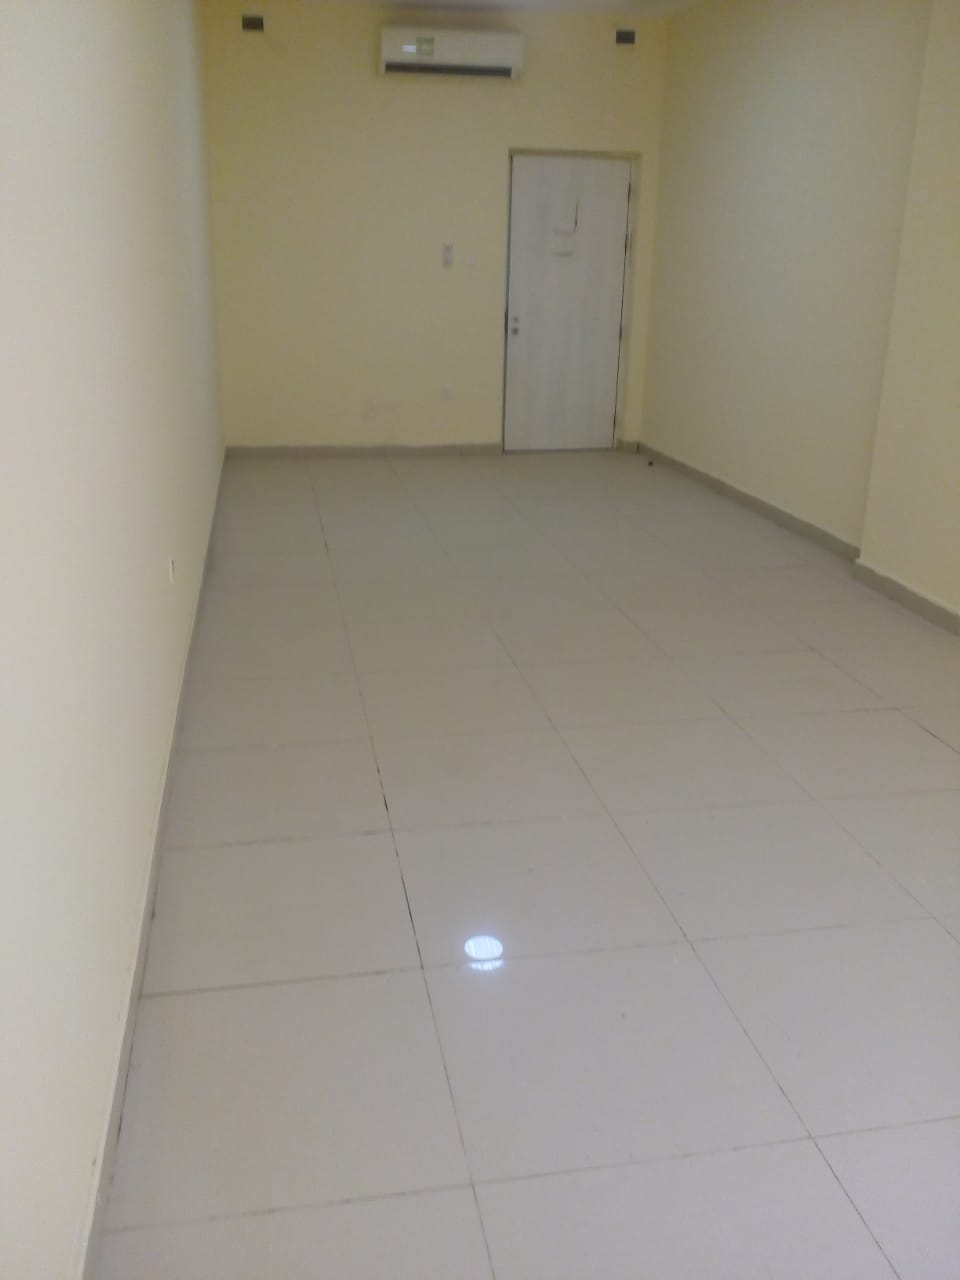 Labour and staff accommodation in different areas of Dubai.  Location Al qouz rustamani area  Total  278 room Price 1900 AED 8 person  Location Sonapur   Total  155 room available Price 1600 AED 6 person  Location Sonapur  Total vecant room 165 Price 1800 AED 8 person   Location jabelali  Total 168 room available  Price 10 person 2000 AED Price 08 person 1800 AED Price 06 person 1600 AED  Mobile + Whatsapp: +971563222319 Email: bilaldxb34@gmail.com  We offers full additional real estate services including residential, commercial, investment opportunities, sales and re-sales of properties.